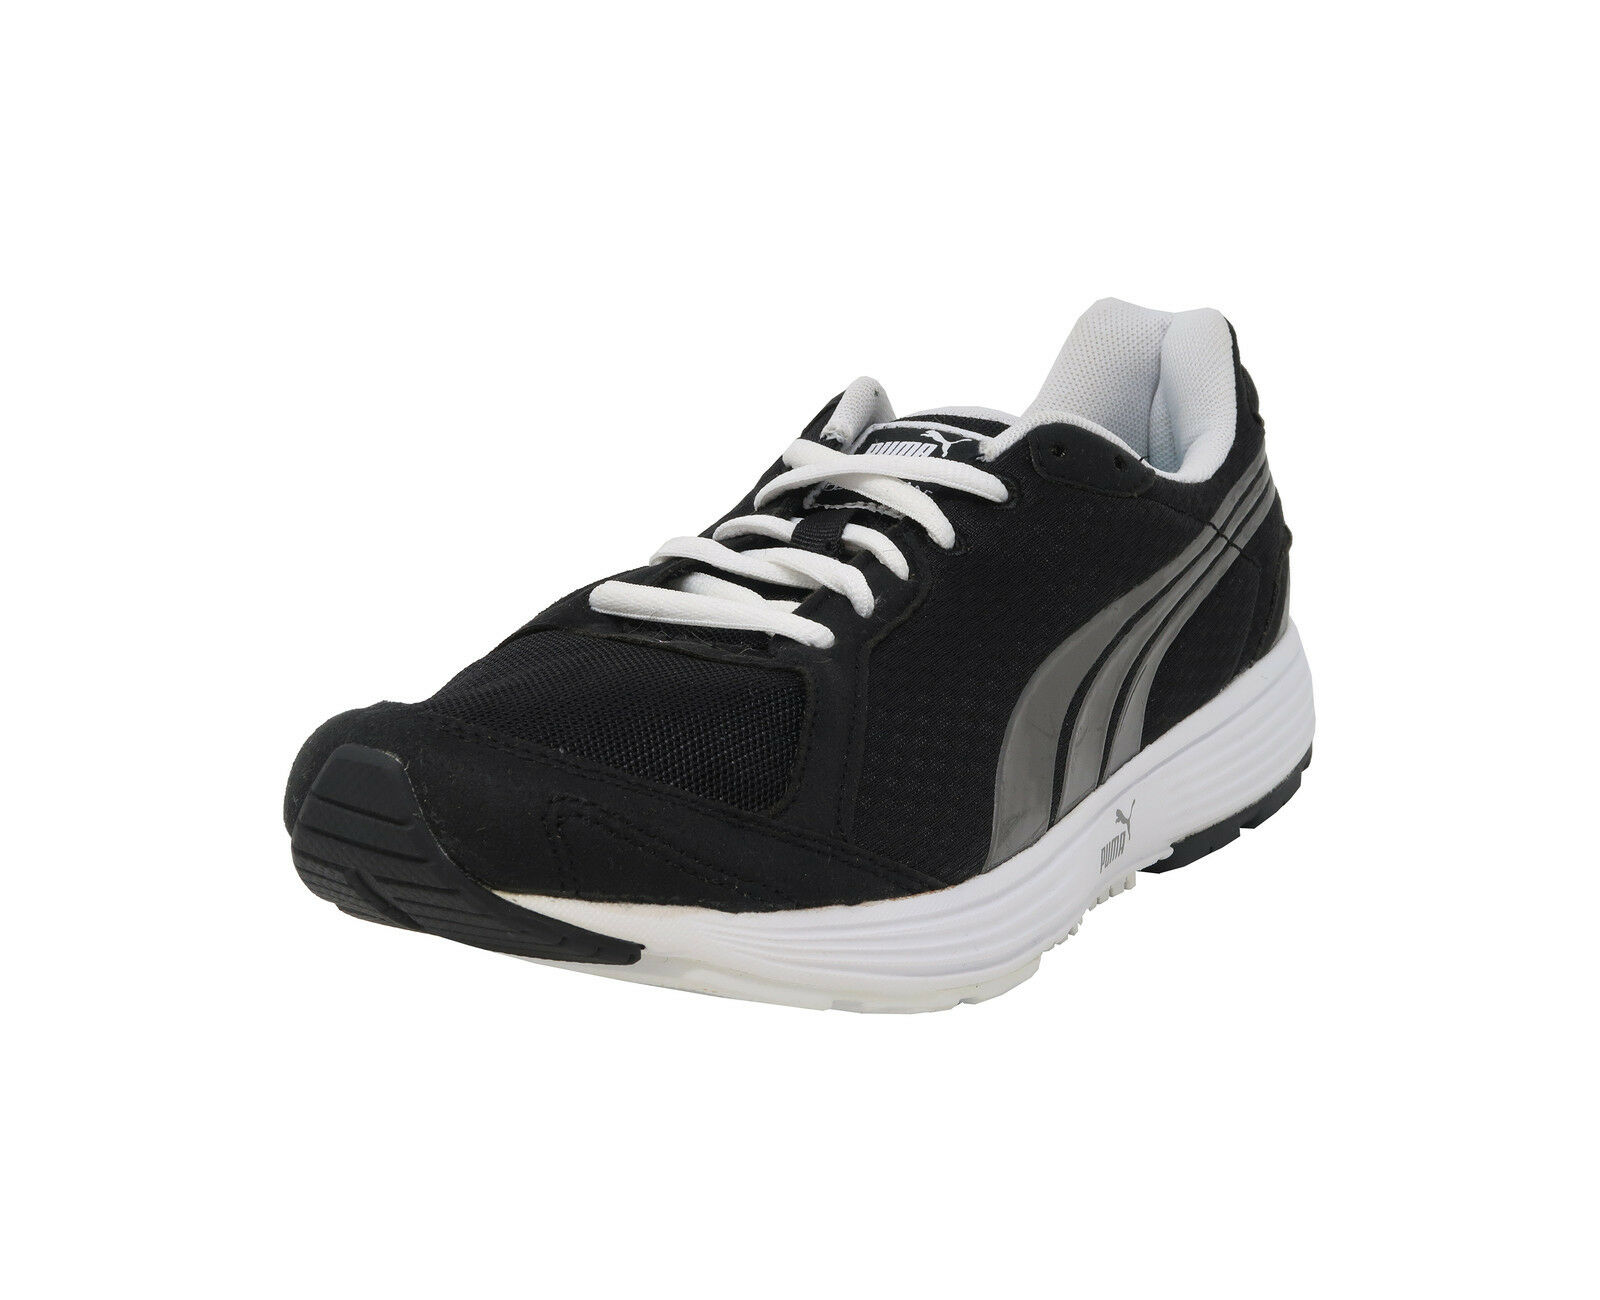 PUMA Descendant Black Aged Silver Silver Silver Running Athletic Sneakers Adult Men shoes 53bf14